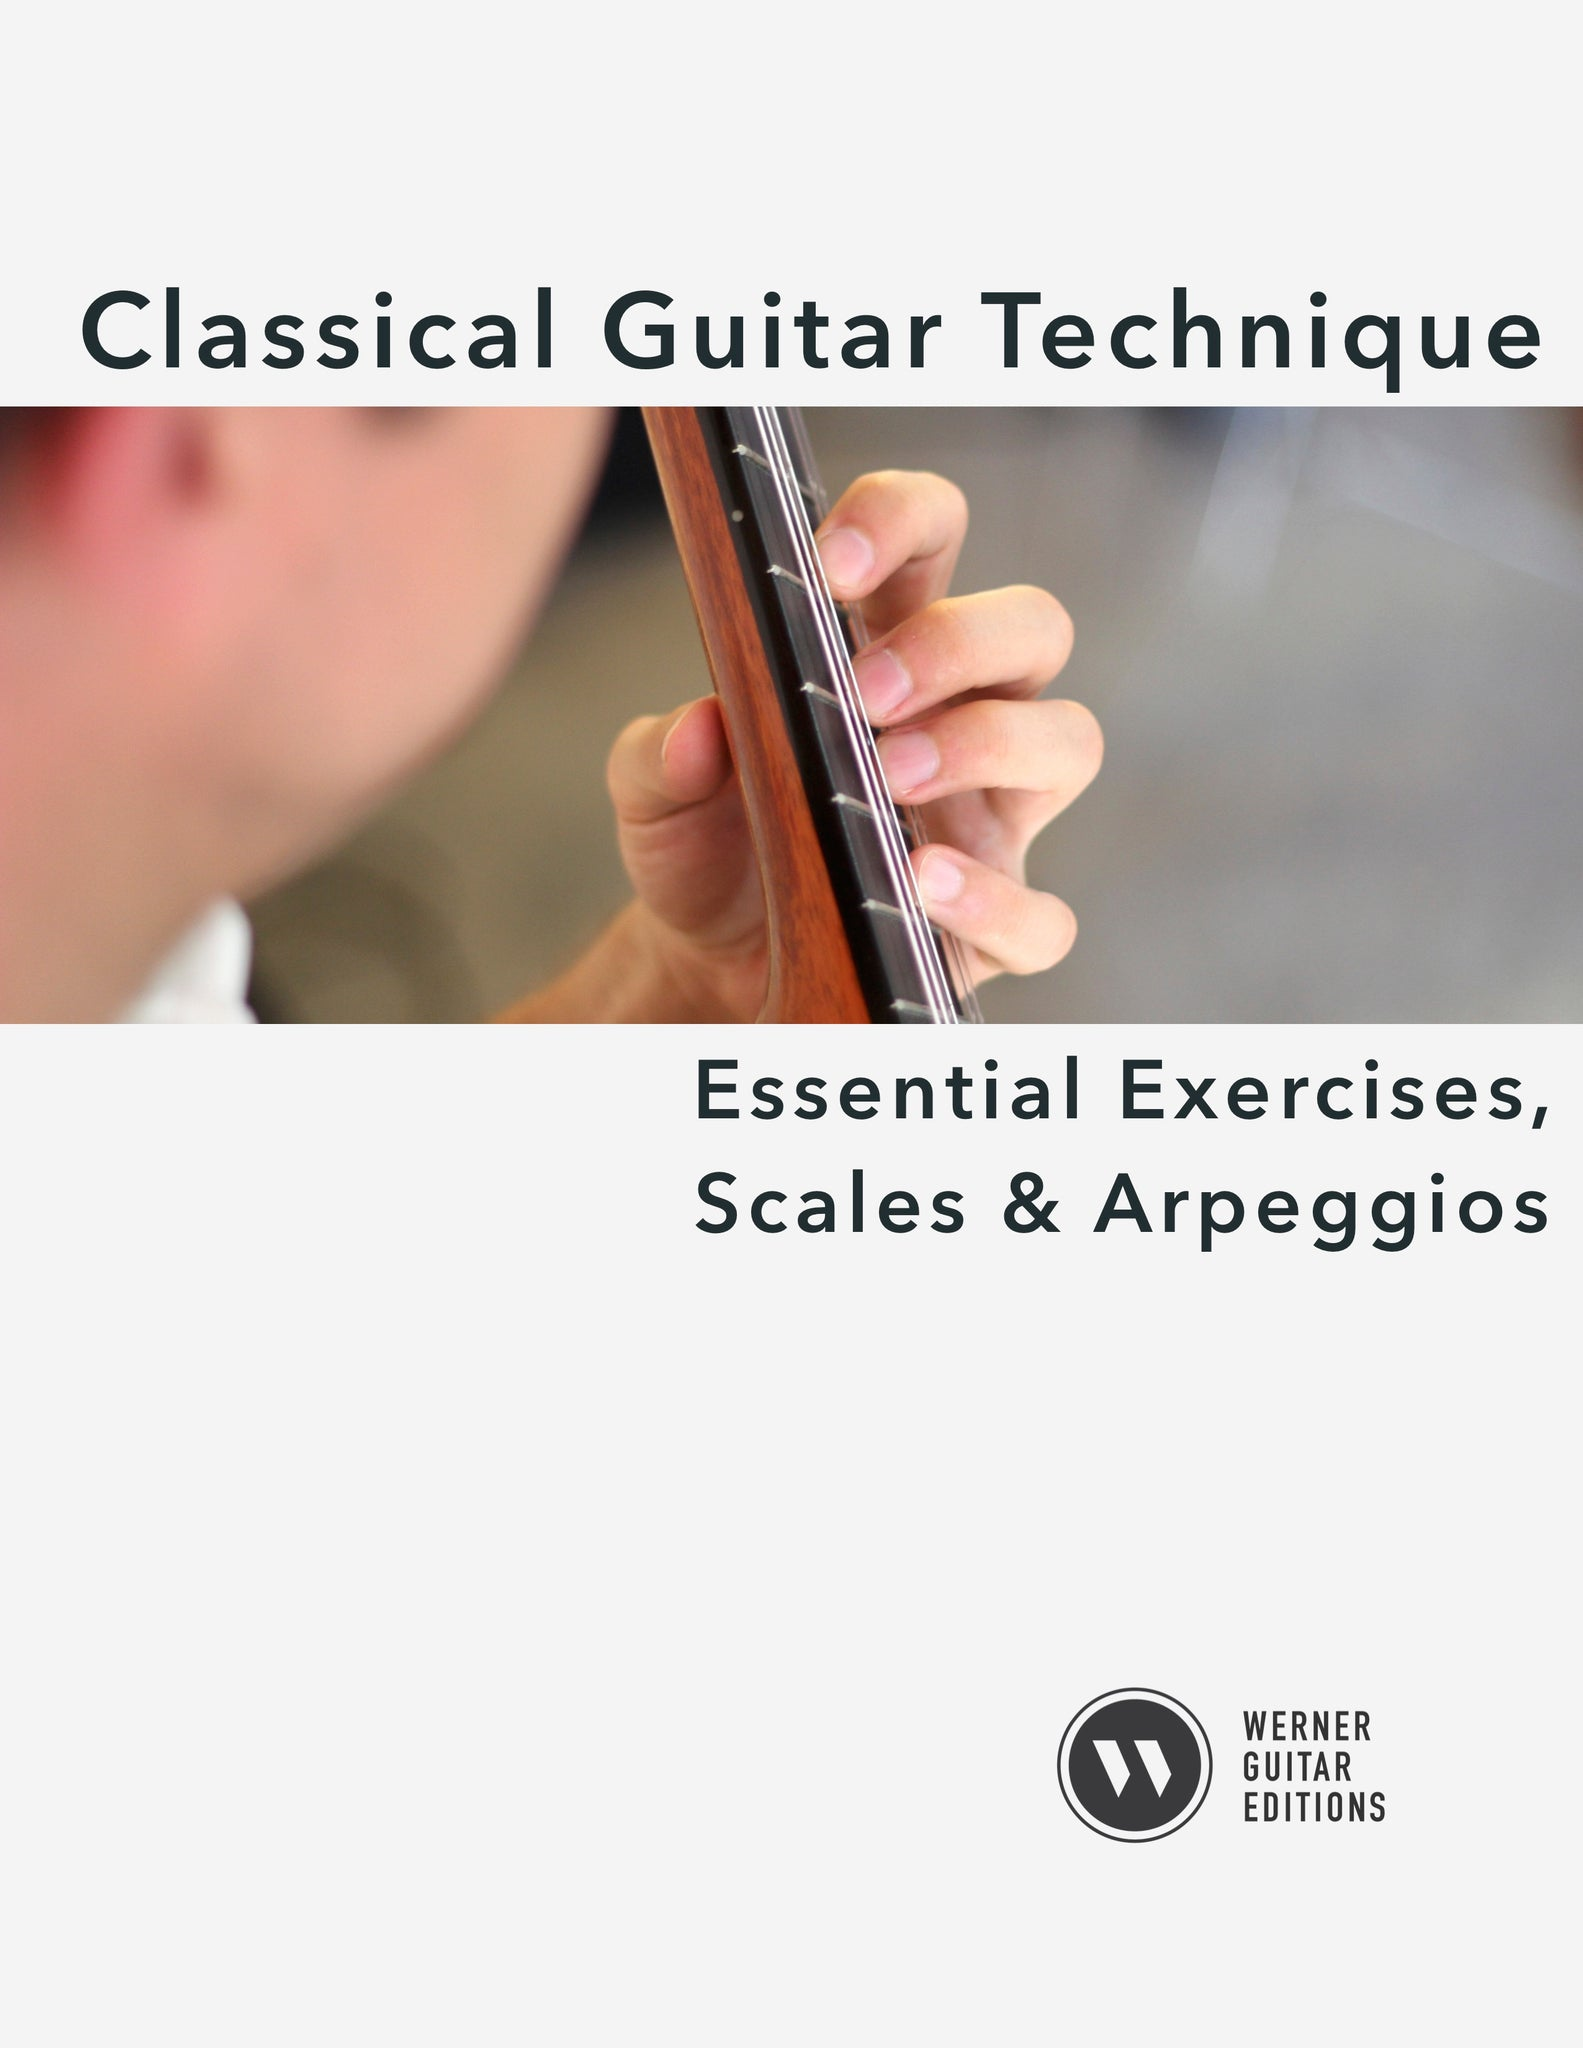 Classical Guitar Technique: Essential Exercises, Scales, and Arpeggios